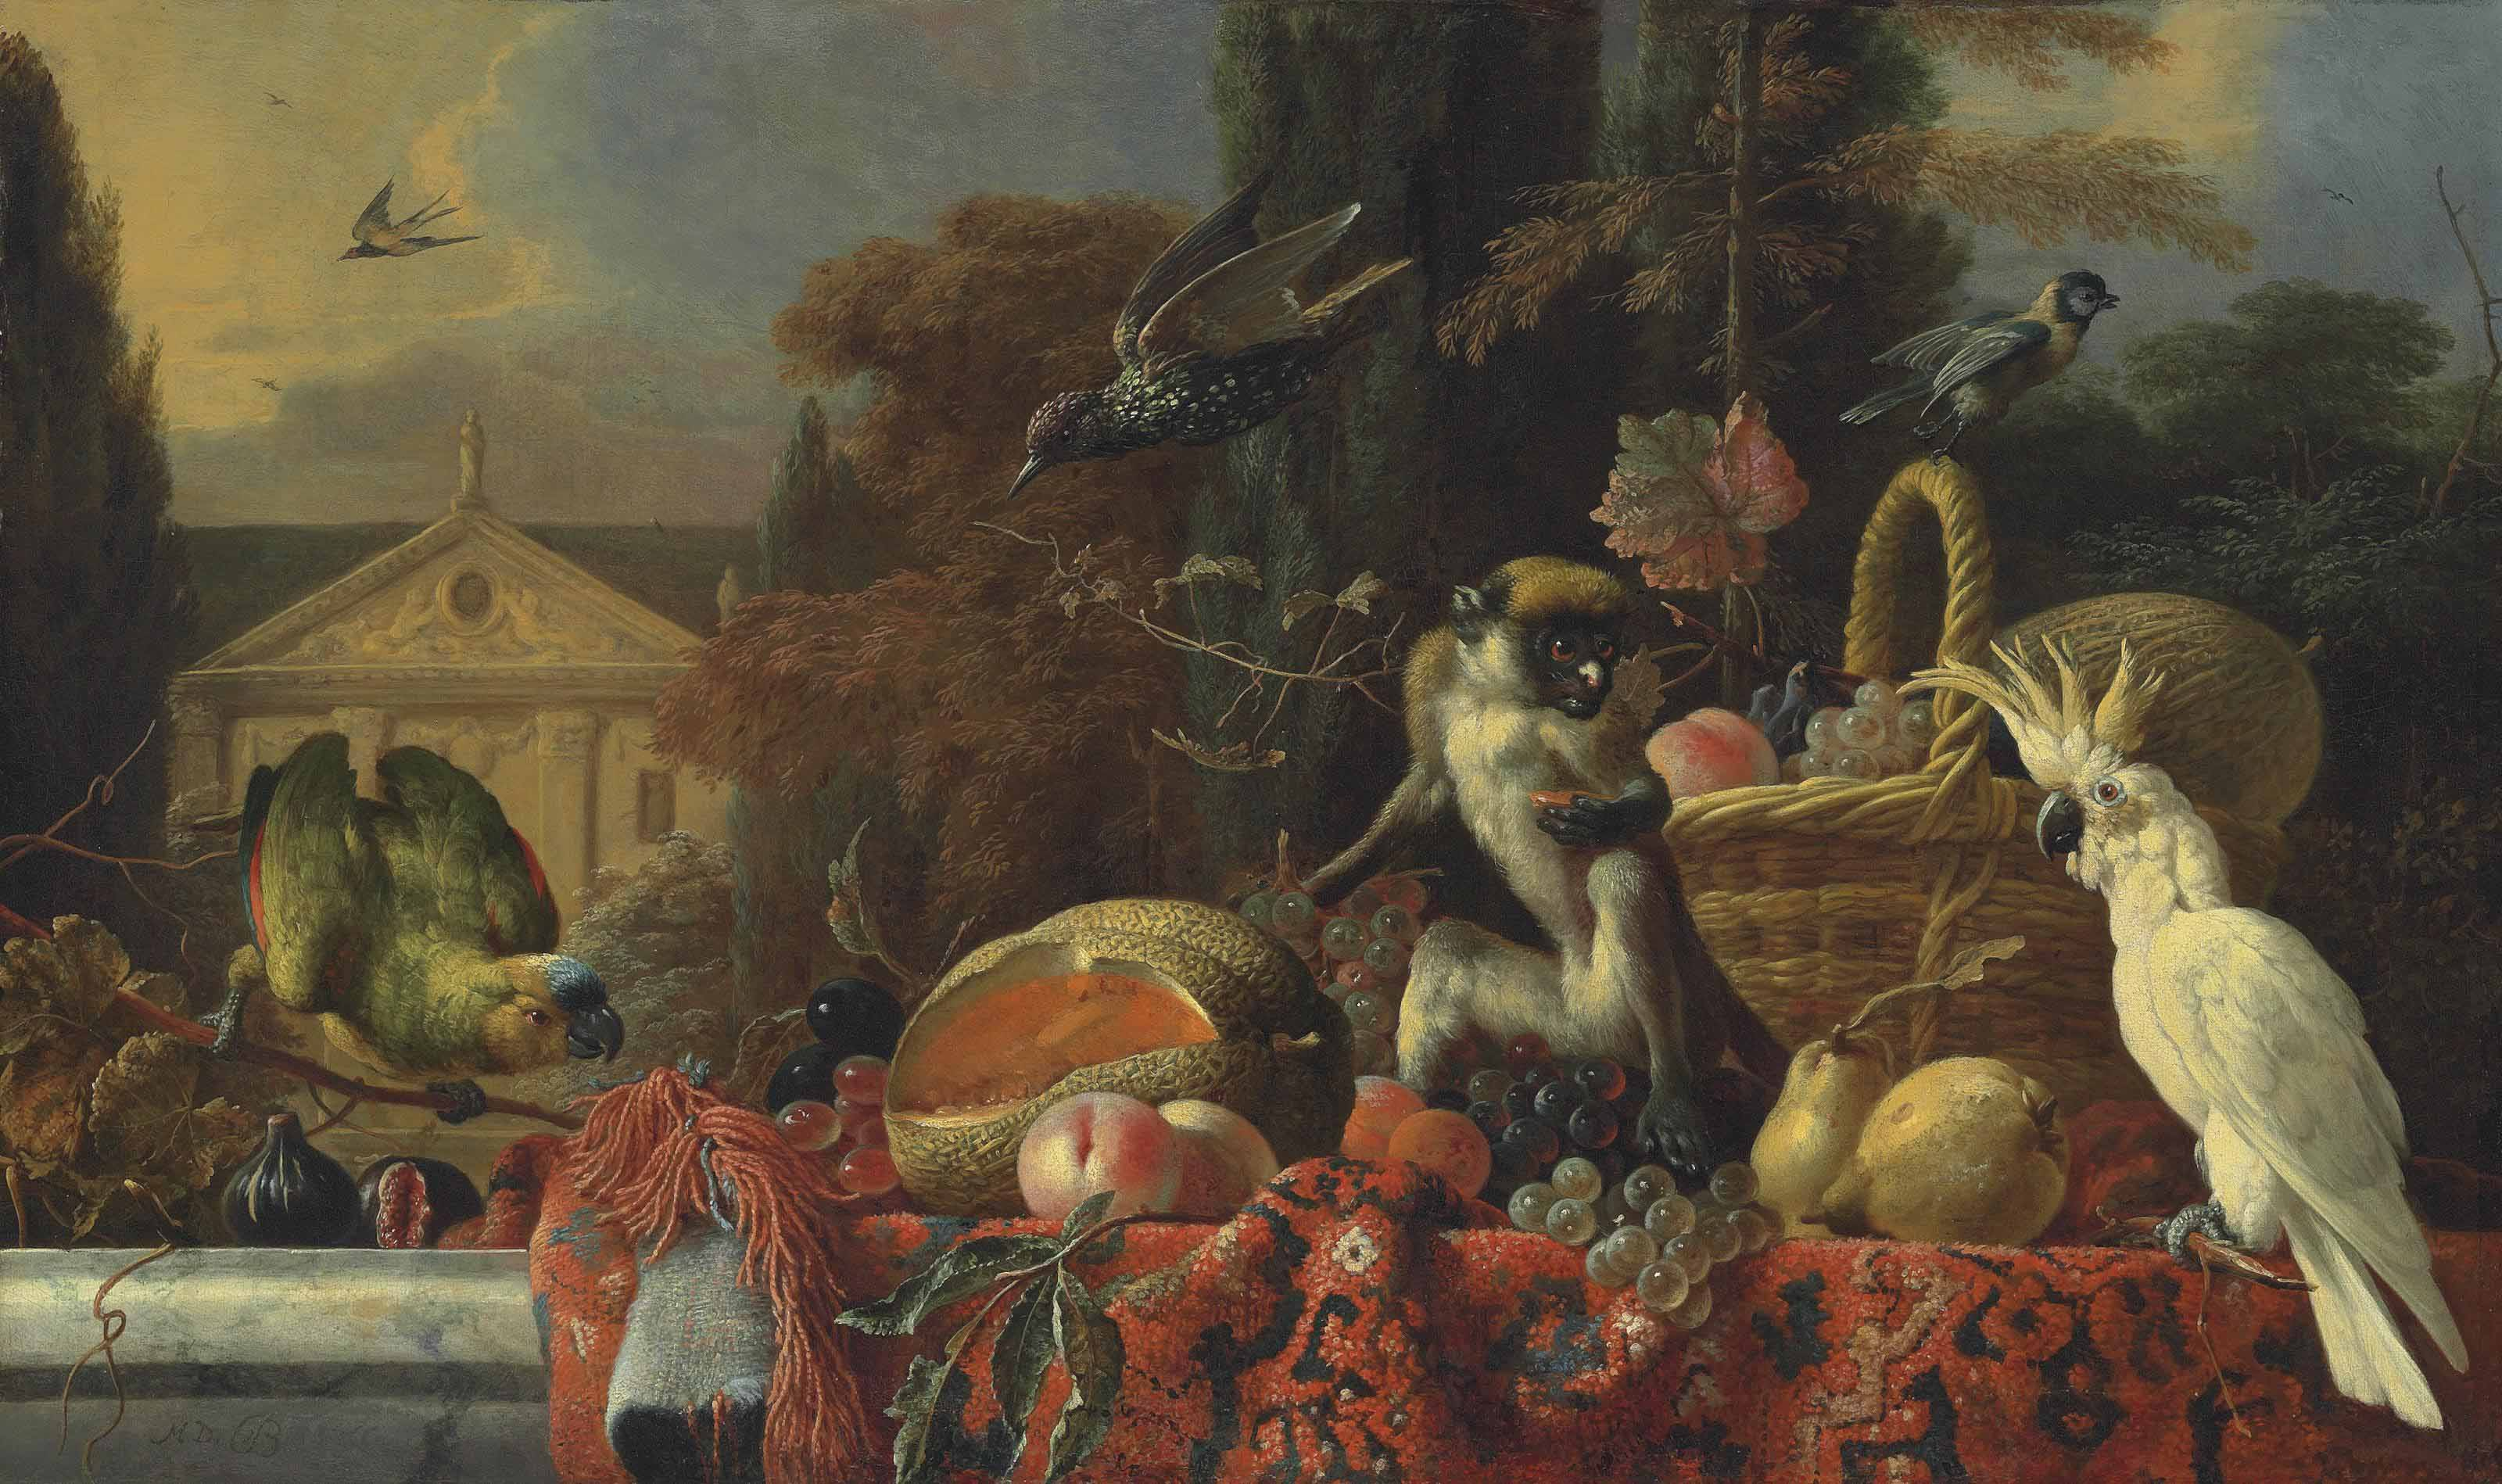 https://www.christies.com/img/LotImages/2014/CKS/2014_CKS_01539_0175_000(melchior_dhondecoeter_a_cockatoo_a_monkey_by_a_wicker_basket_of_fruit).jpg